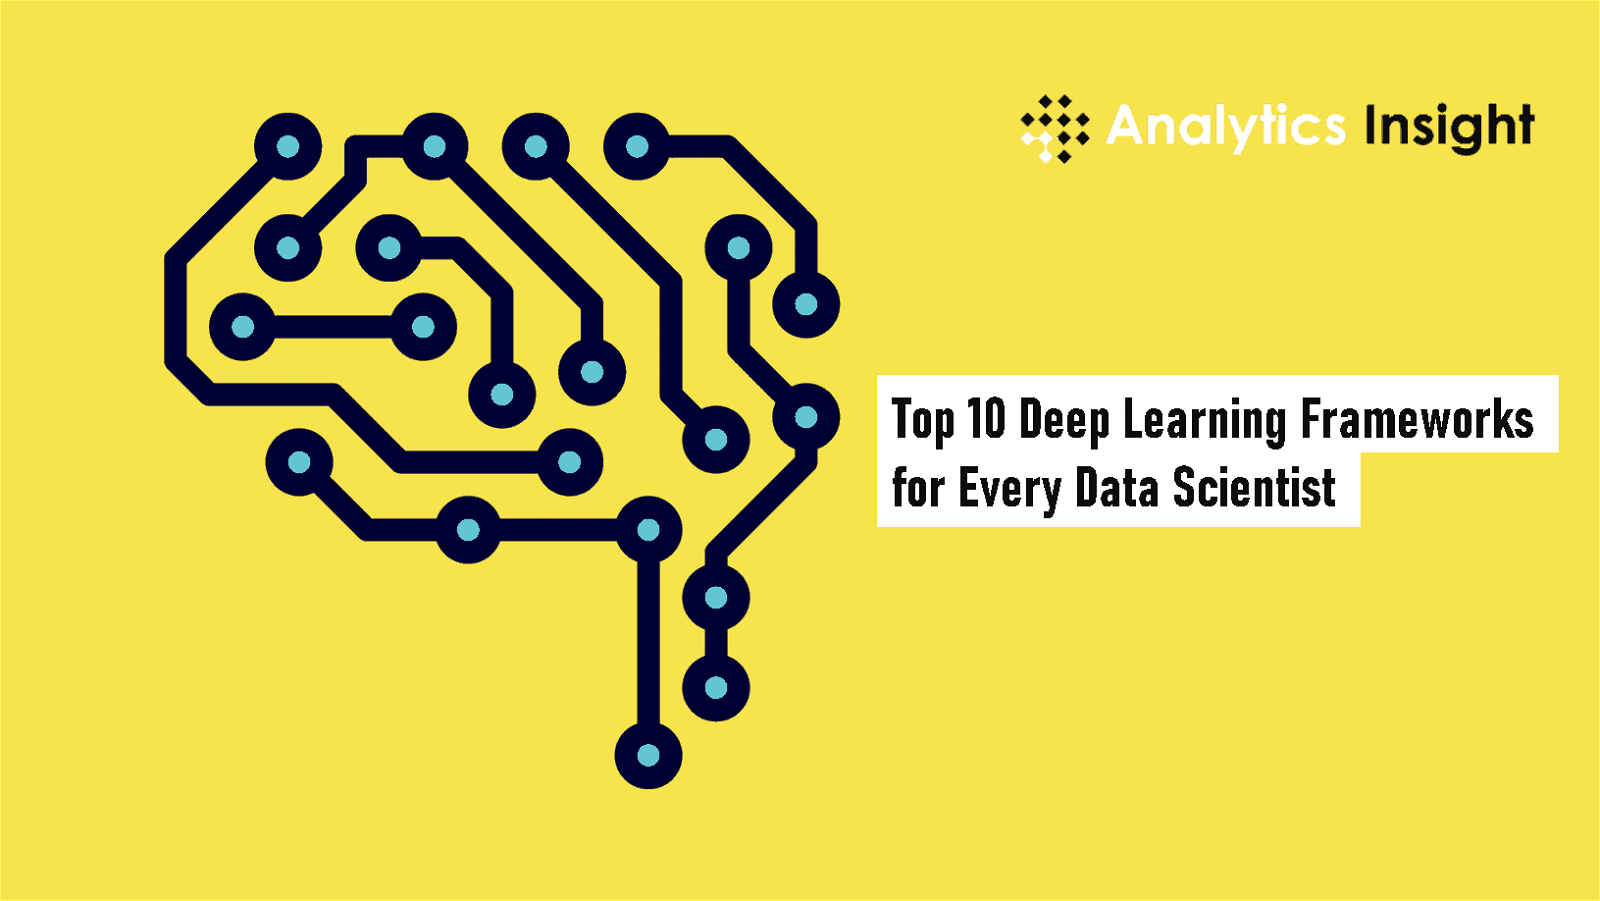 Deep Learning Frameworks for Data Scientists